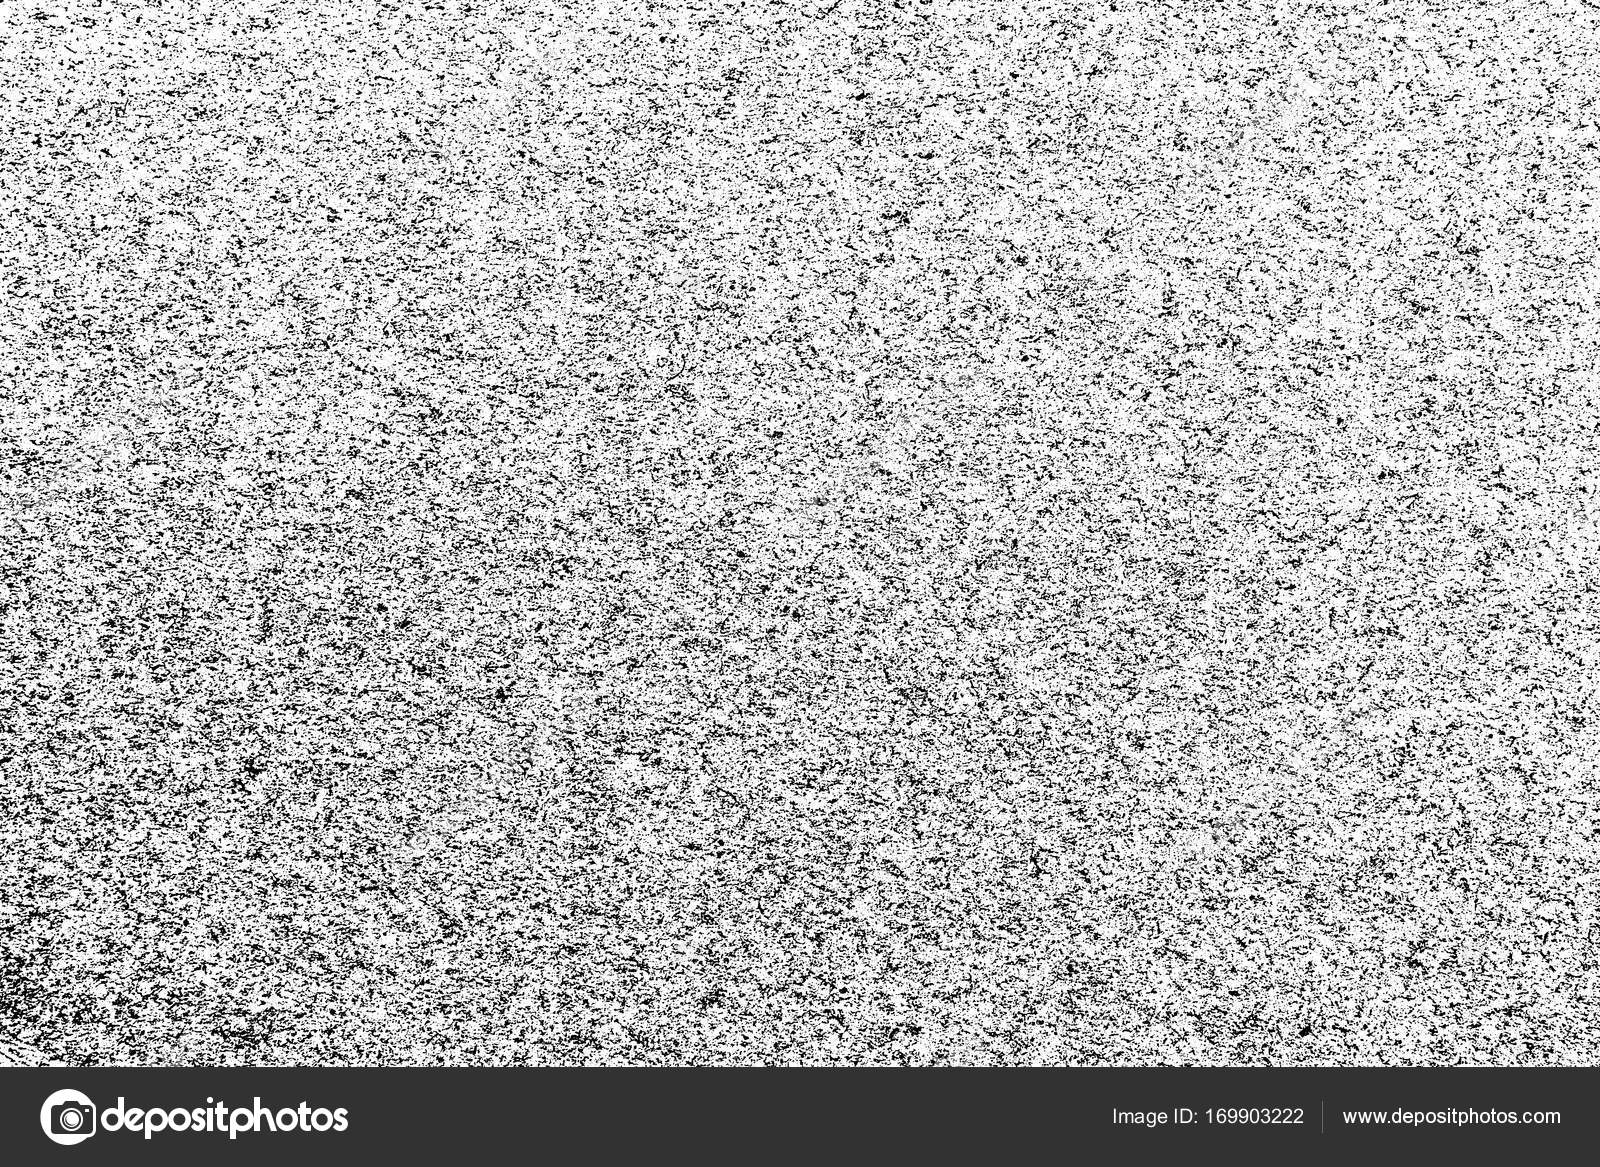 Noise texture Grunge dust grain messy for overlay or abstract dark